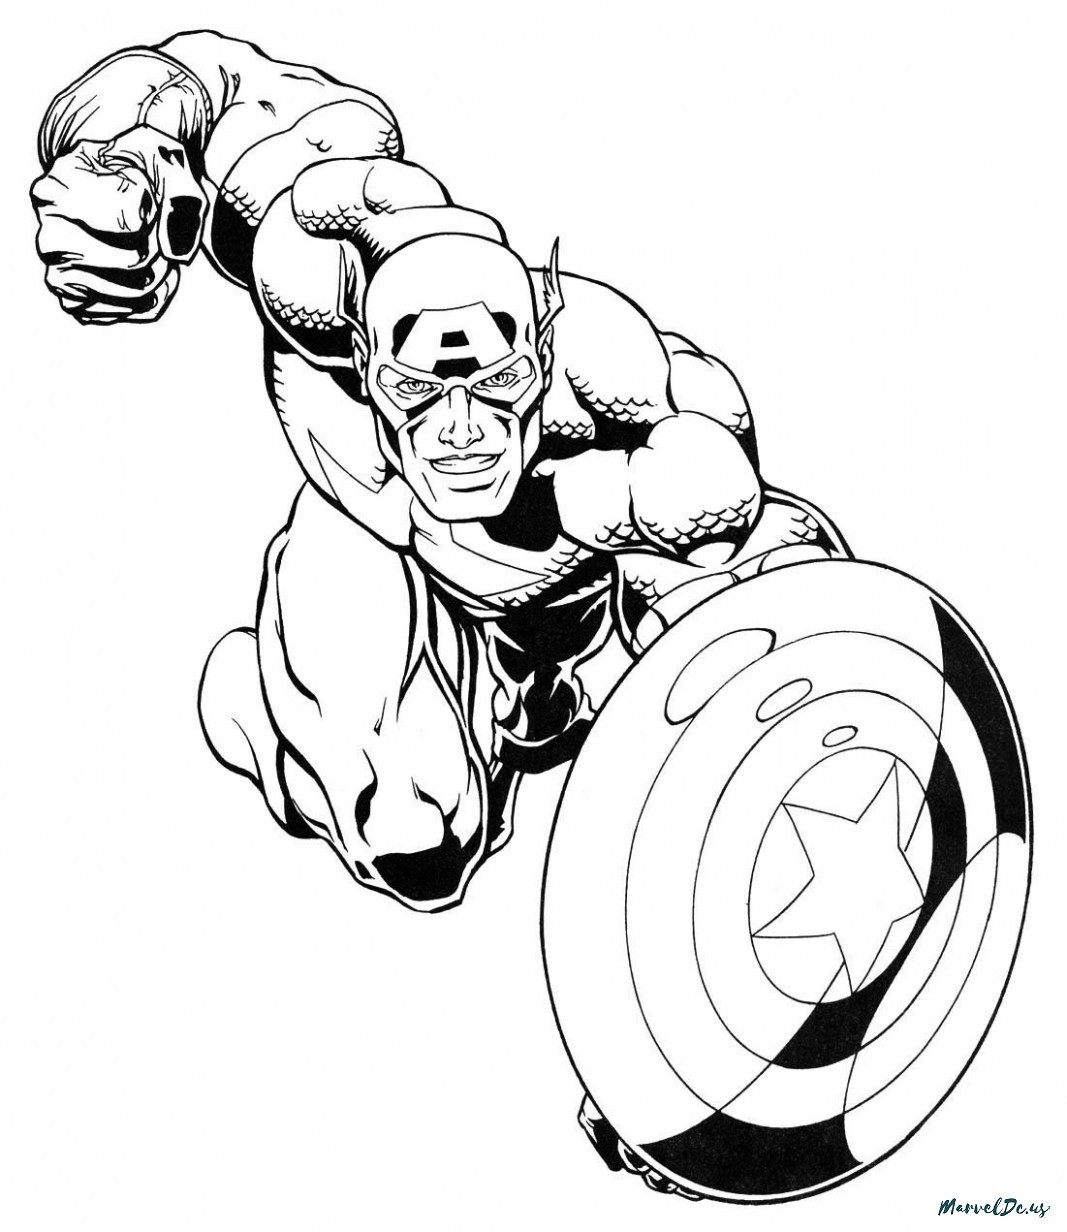 15 New Marvel Coloring Pages for Adults Gallery Of Superheroes Printable Coloring Pages Gidiyedformapolitica Download